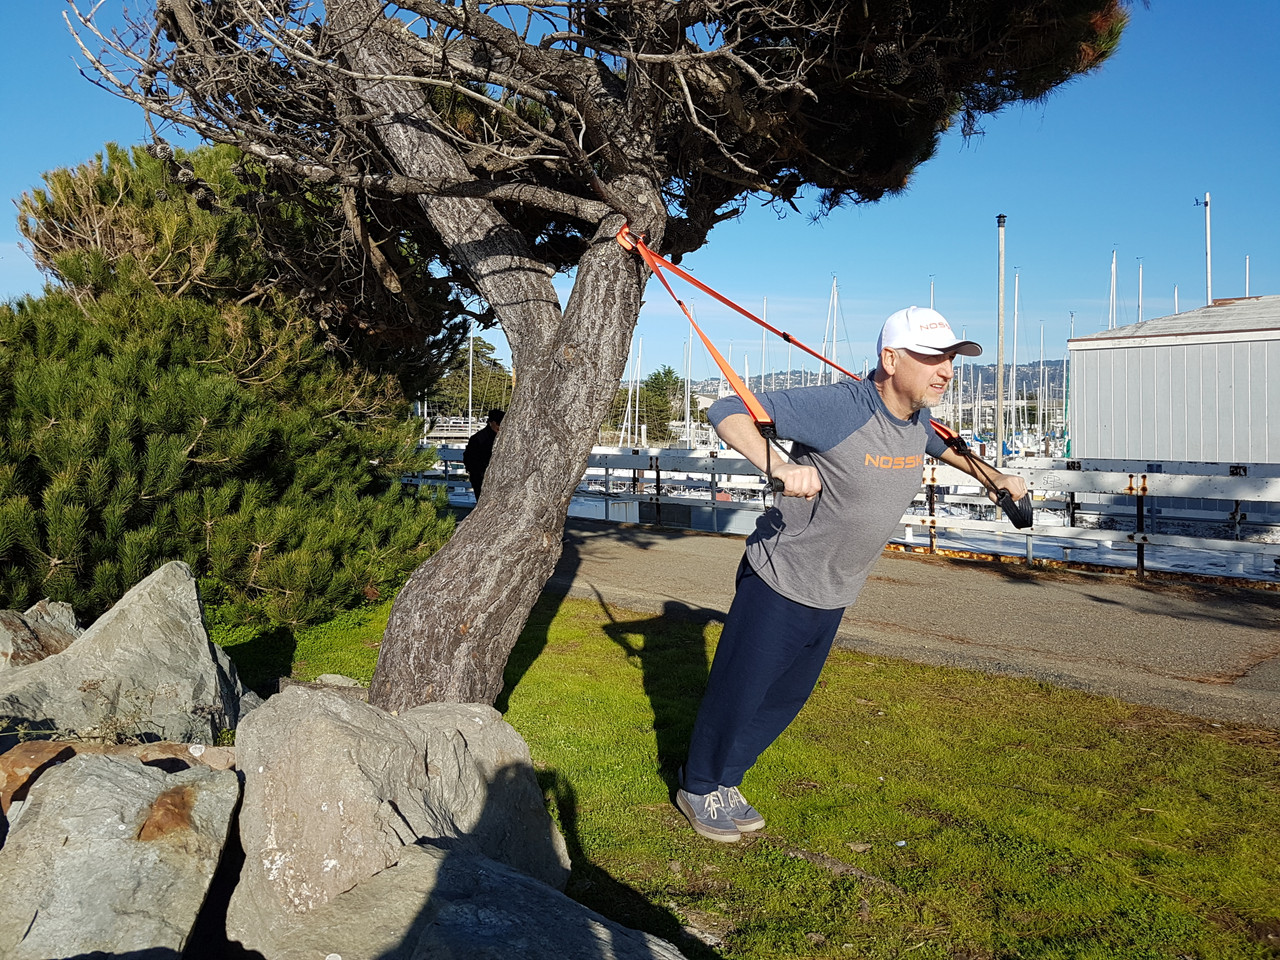 What's the Big deal about a NOSSK Bodyweight Suspension Fitness Trainer anyway?